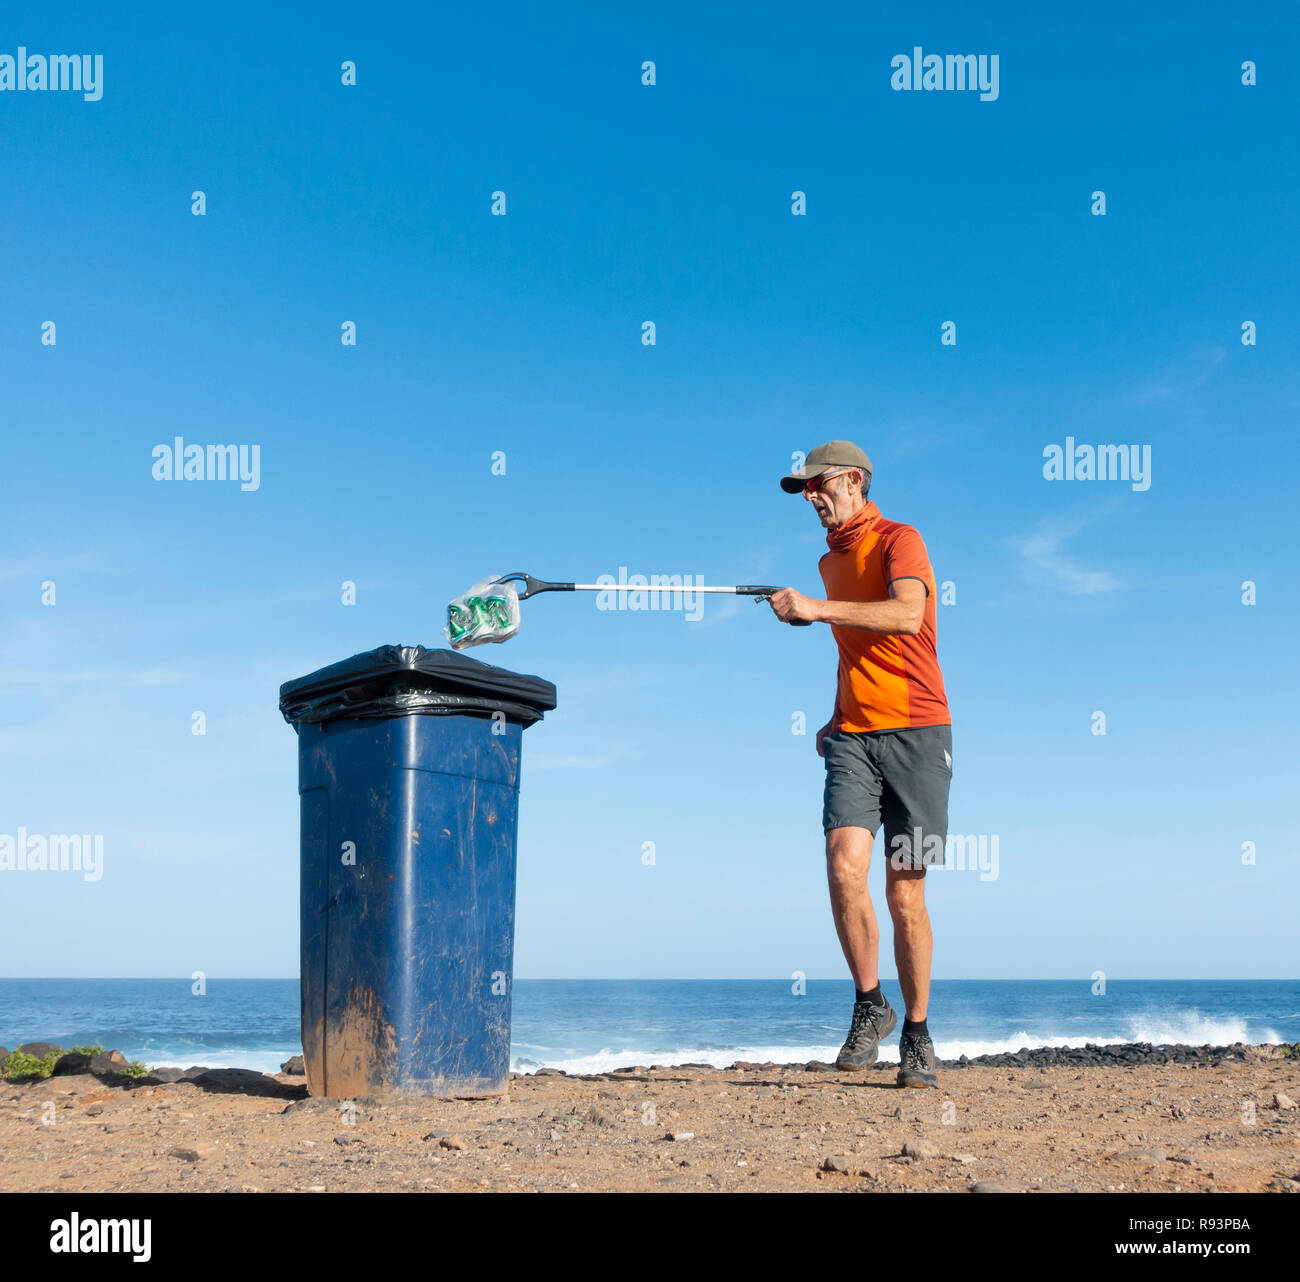 A Plogger/jogger collects plastic rubbish from beach during his morning run Stock Photo